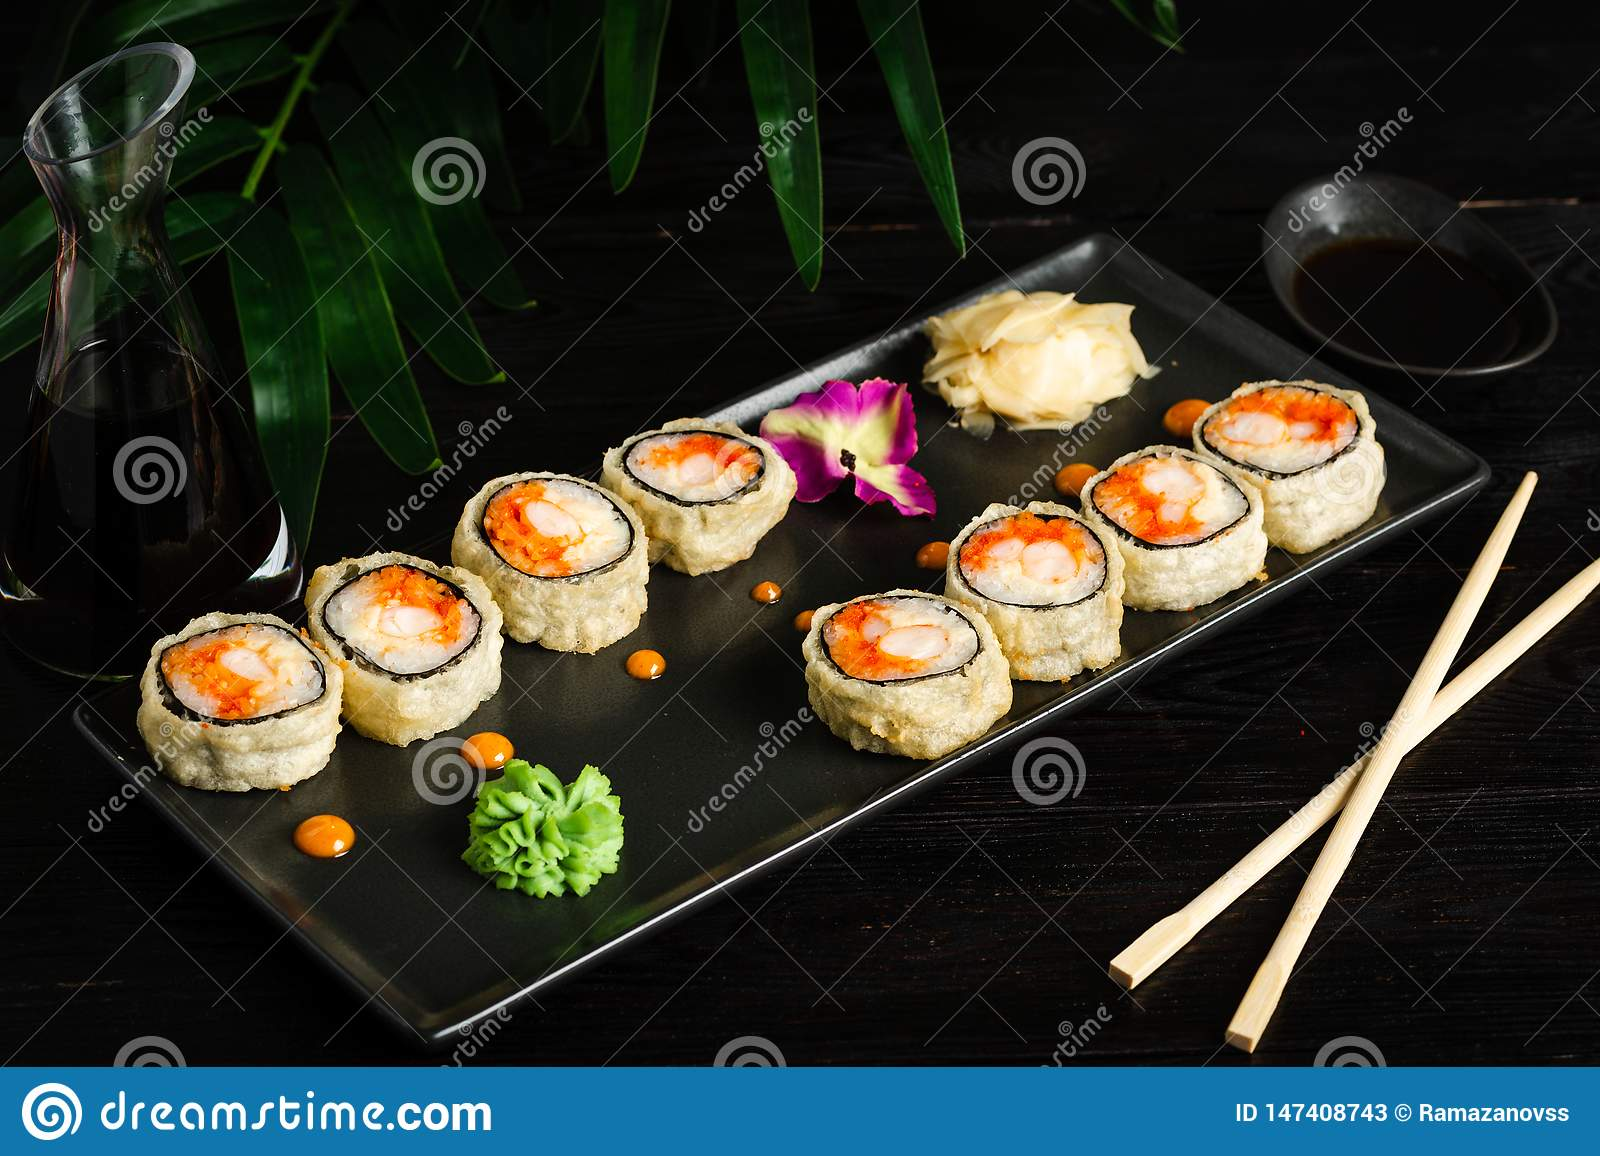 set of sushi rolls on a black plate on a black wooden background with green leaves of a houseplant